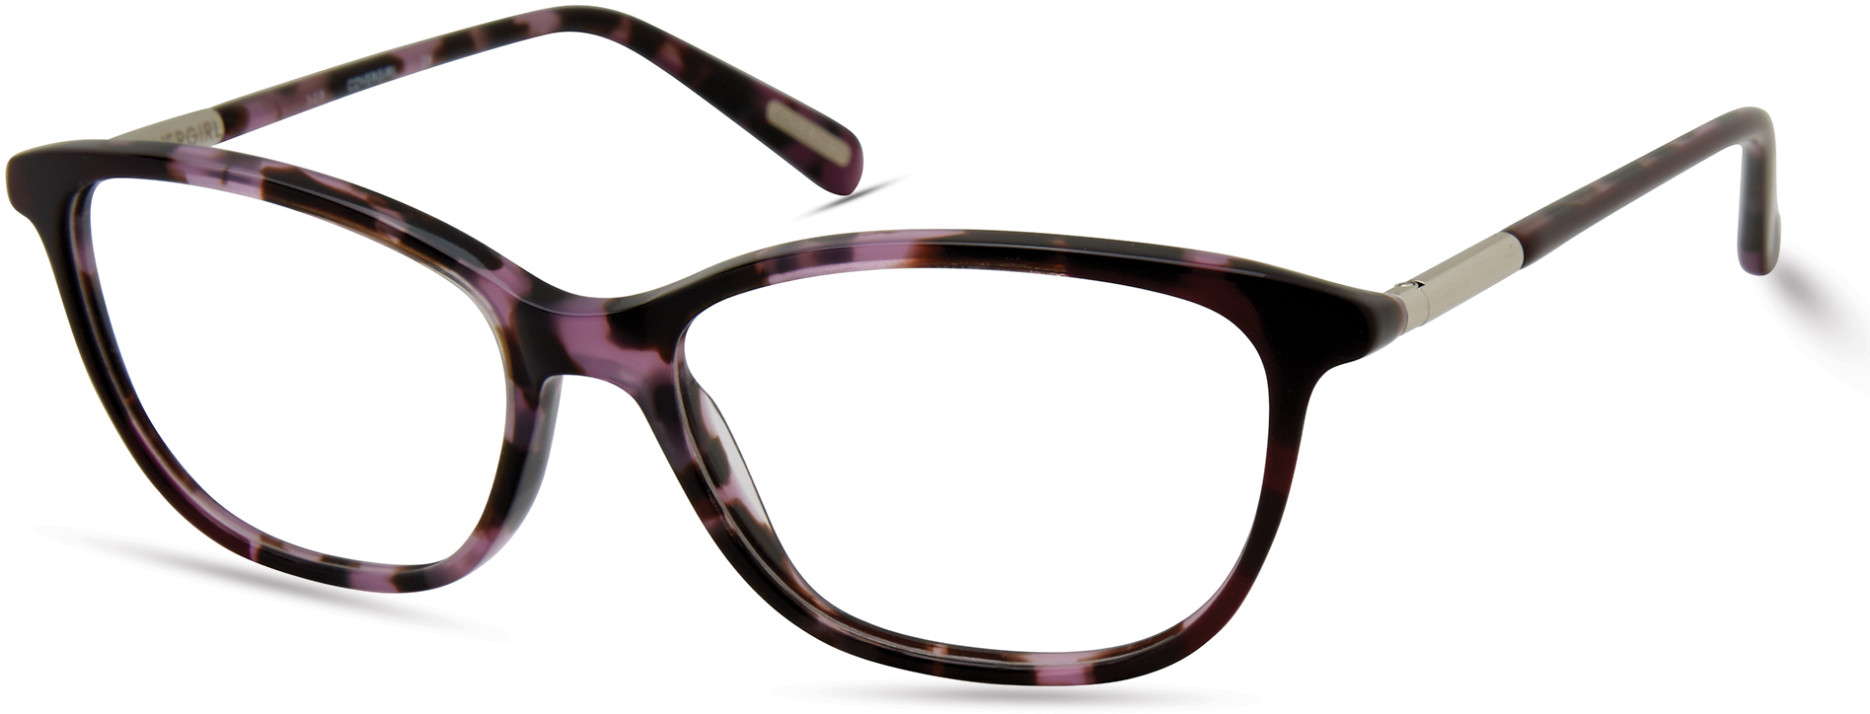 Cover Girl Eyeglasses<br>CG 4001